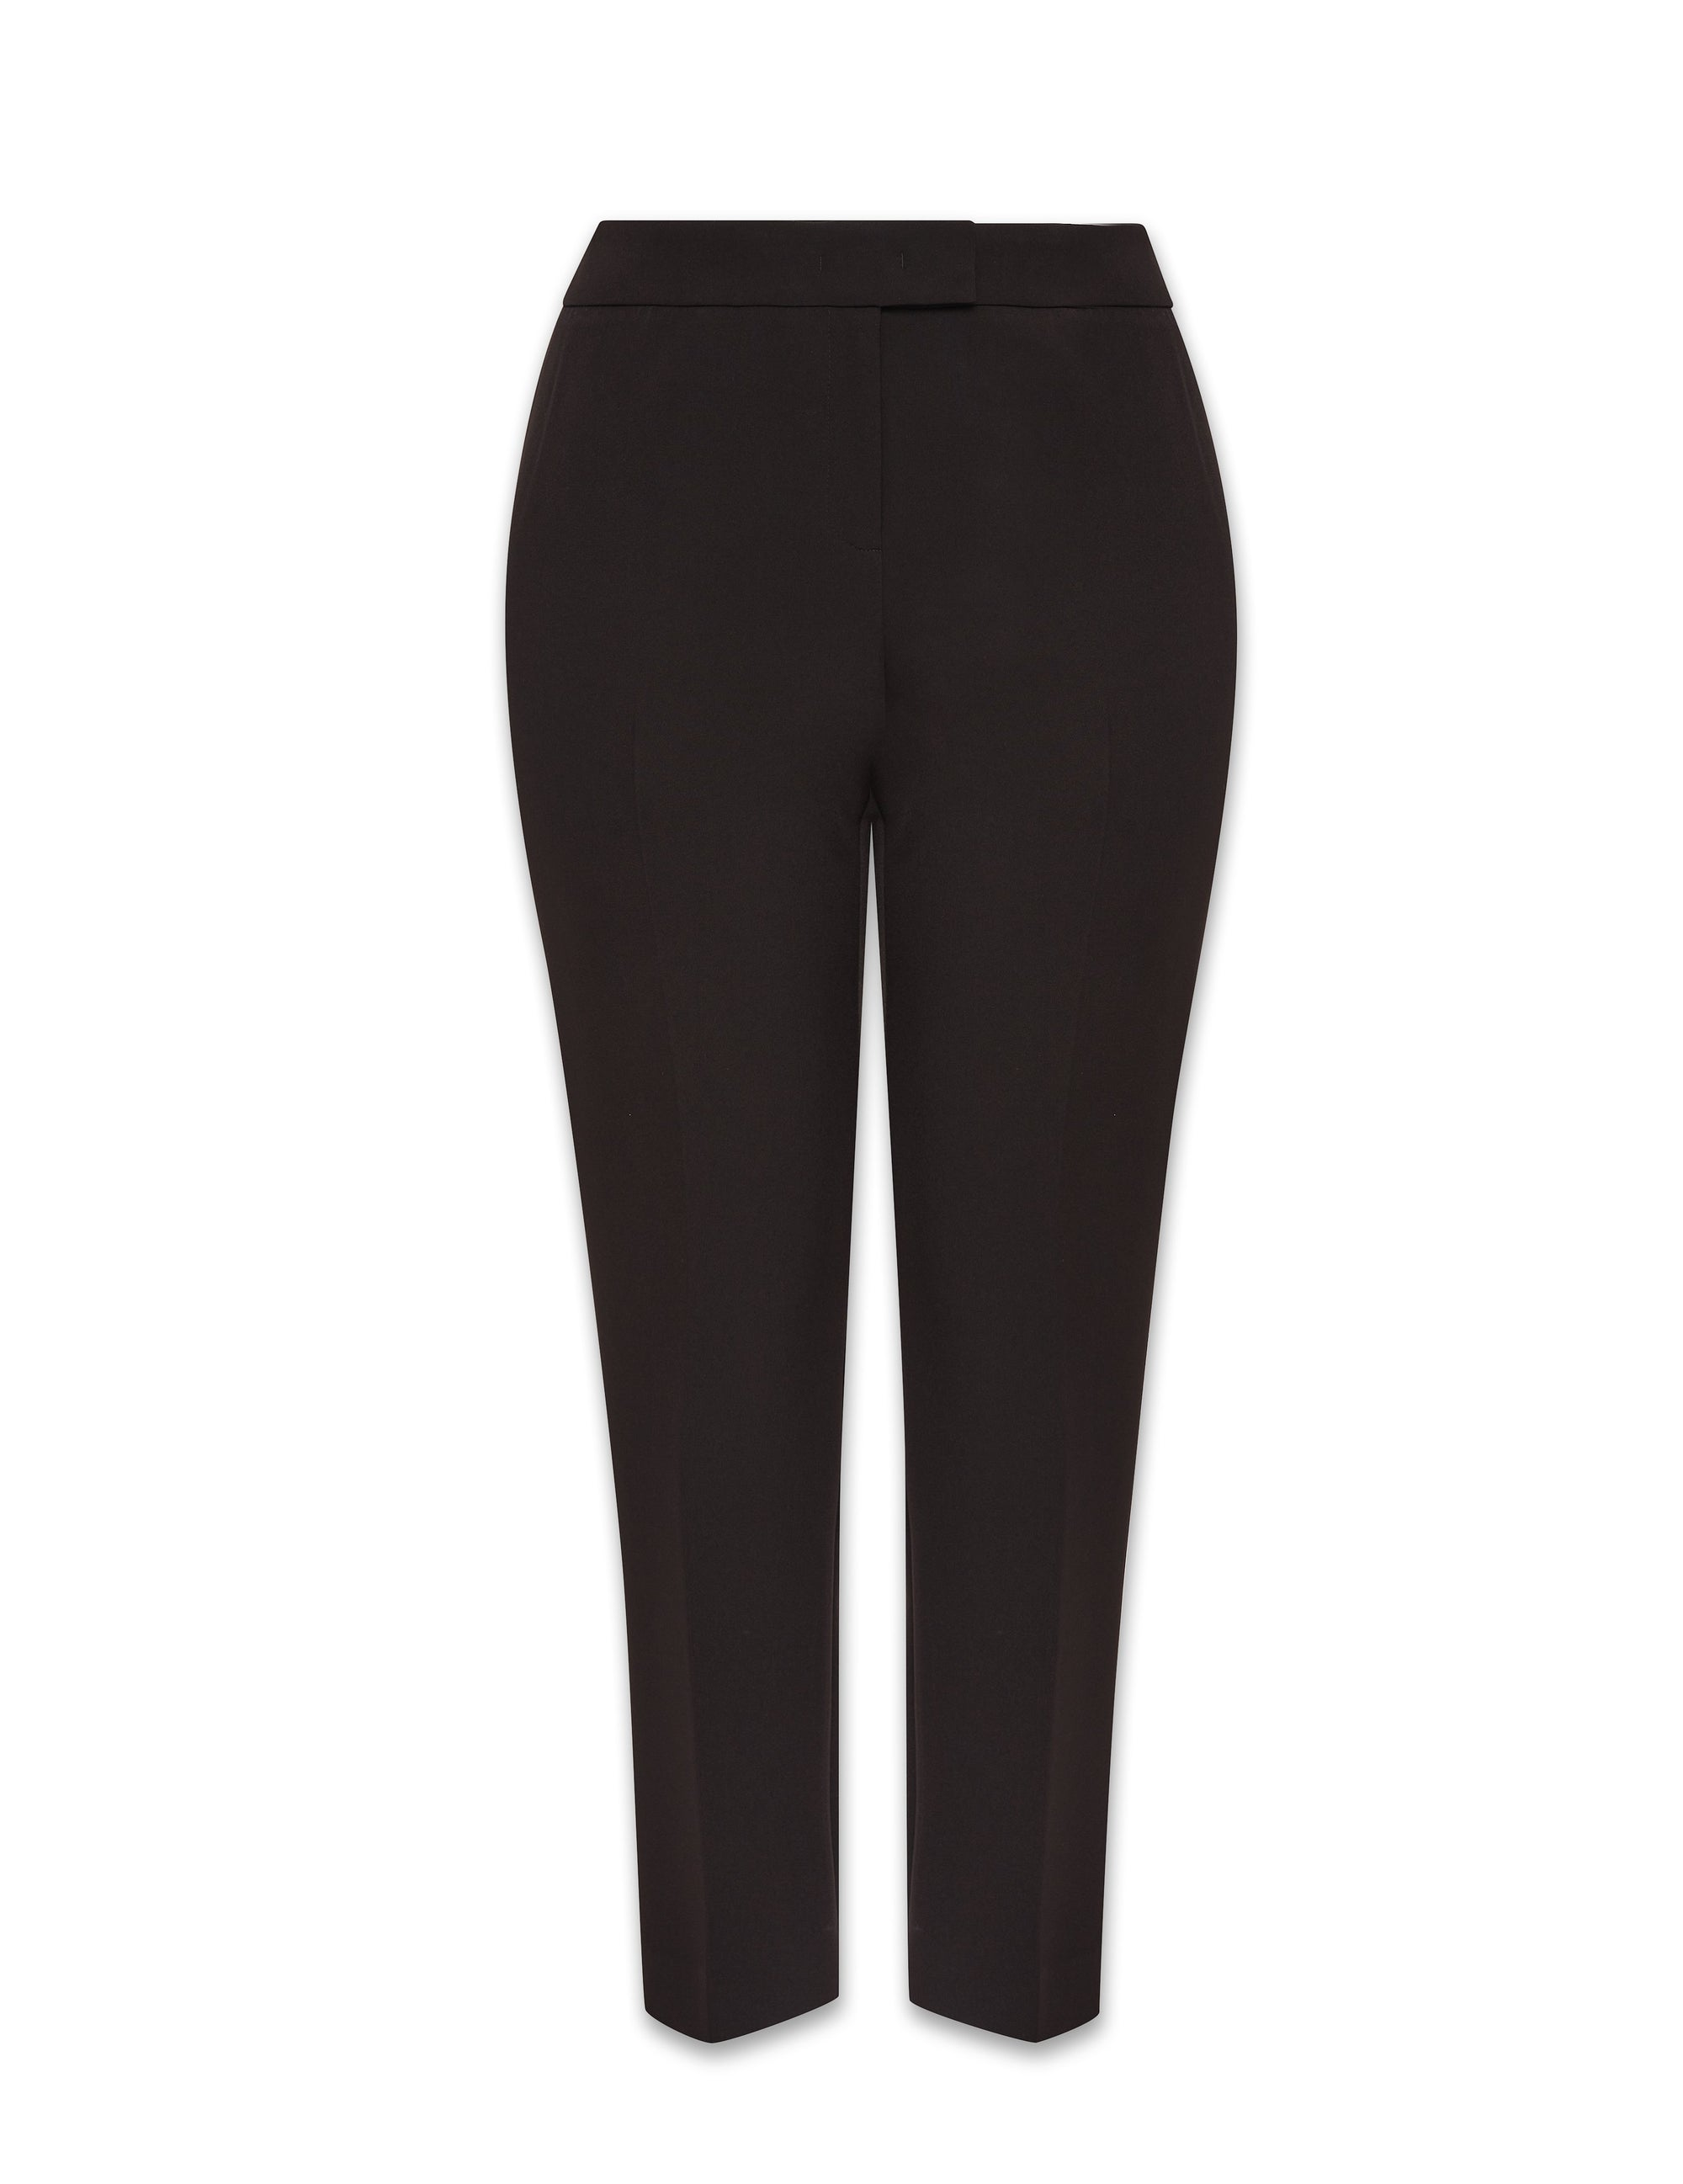 Anne Klein Black Contour Stretch Bowie Pant